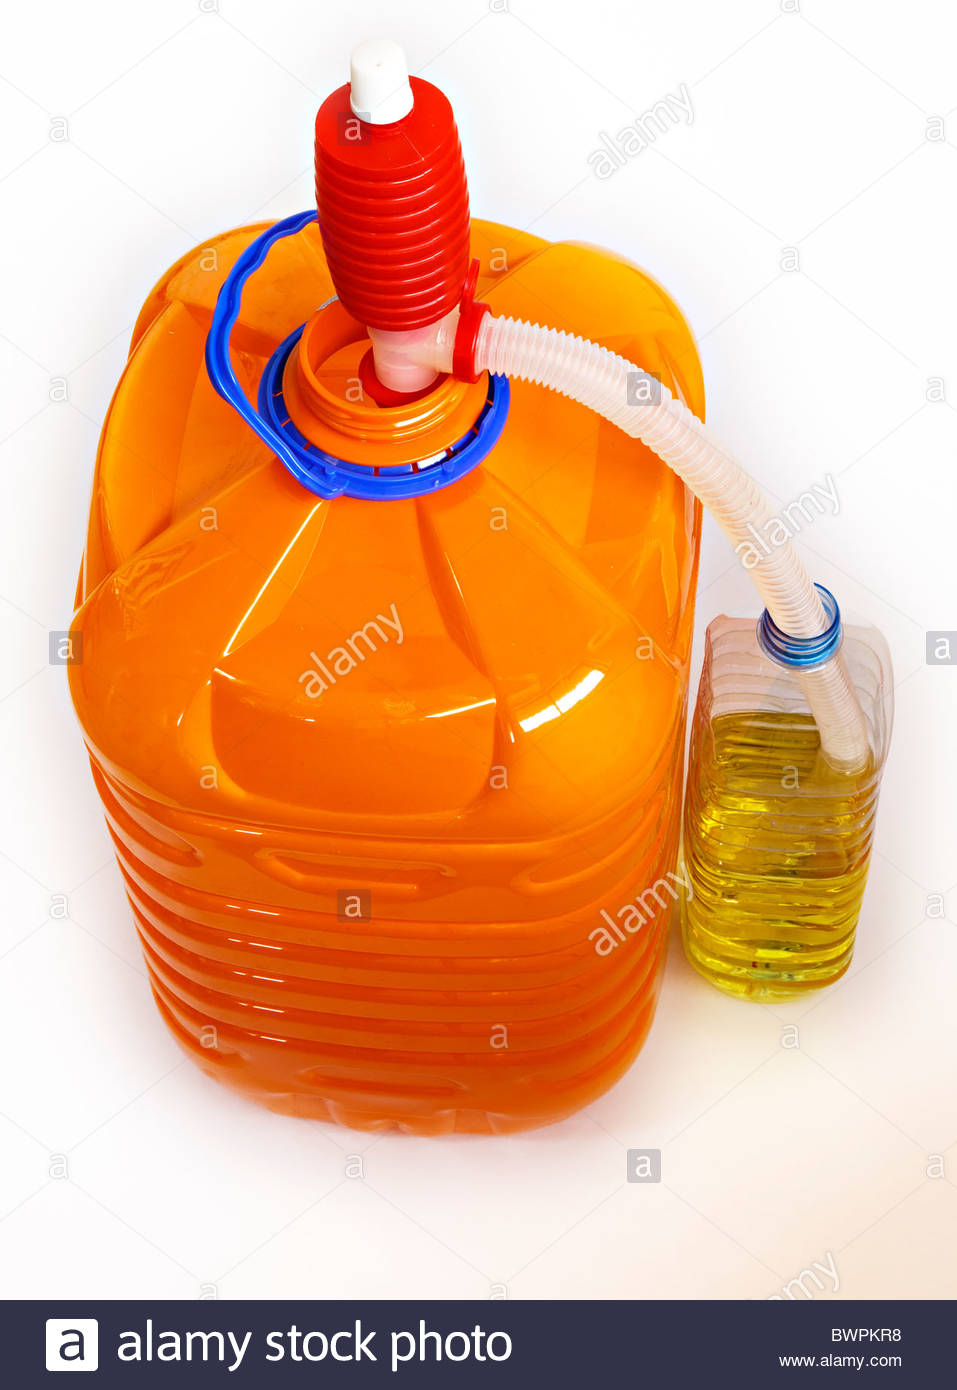 Siphon with plastic hose and paraffin bottle - Stock Image